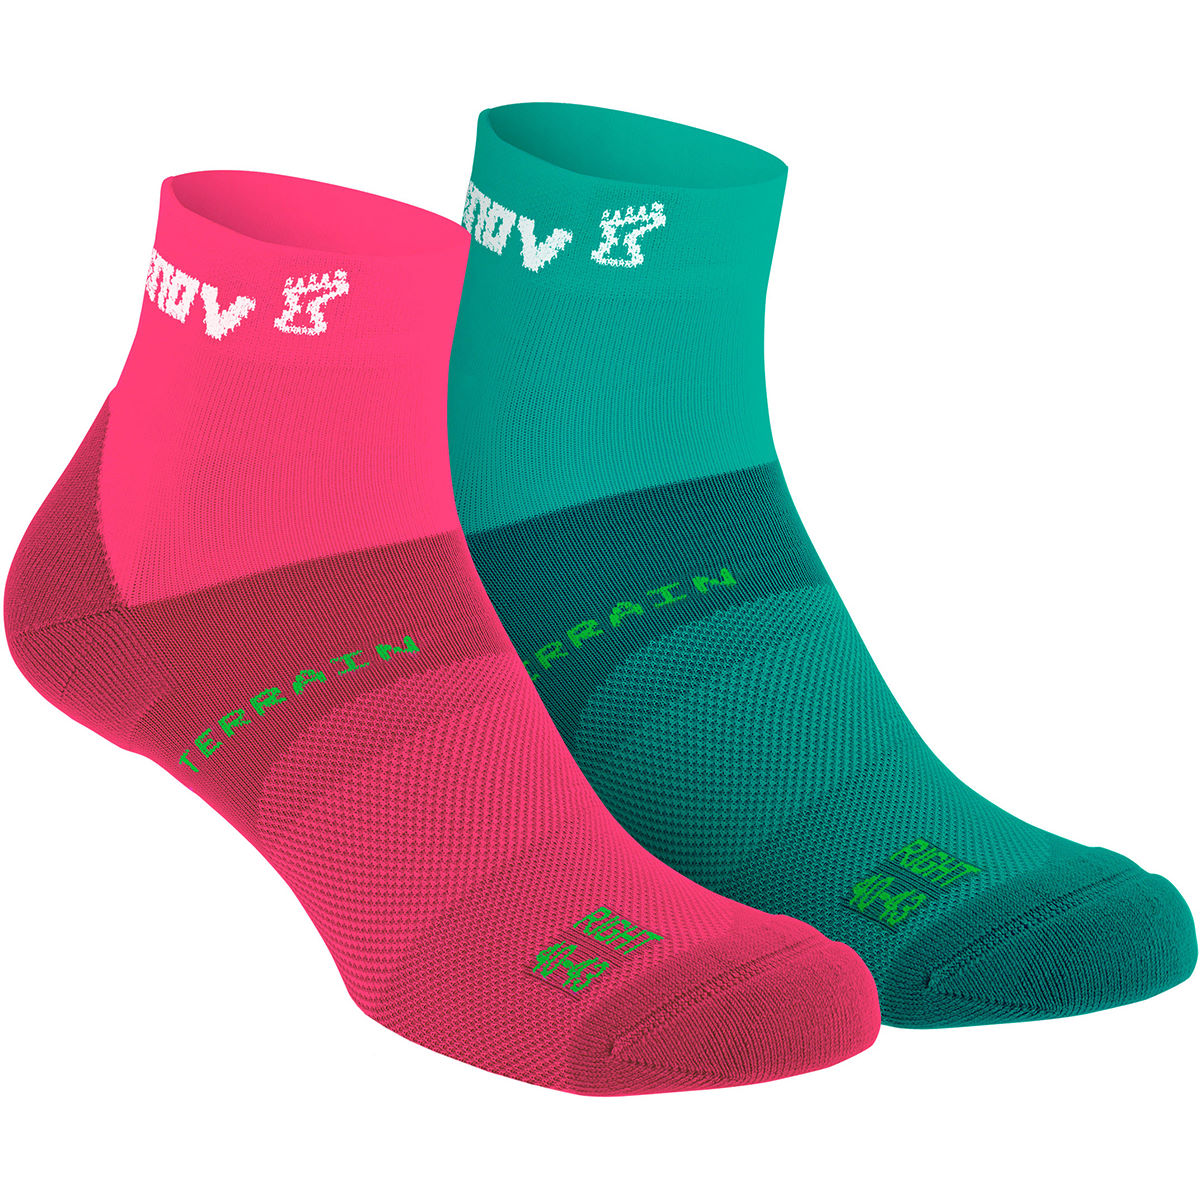 Chaussettes Inov-8 All Terrain (mi-hautes, PE17) - S Teal/Pink Chaussettes de running